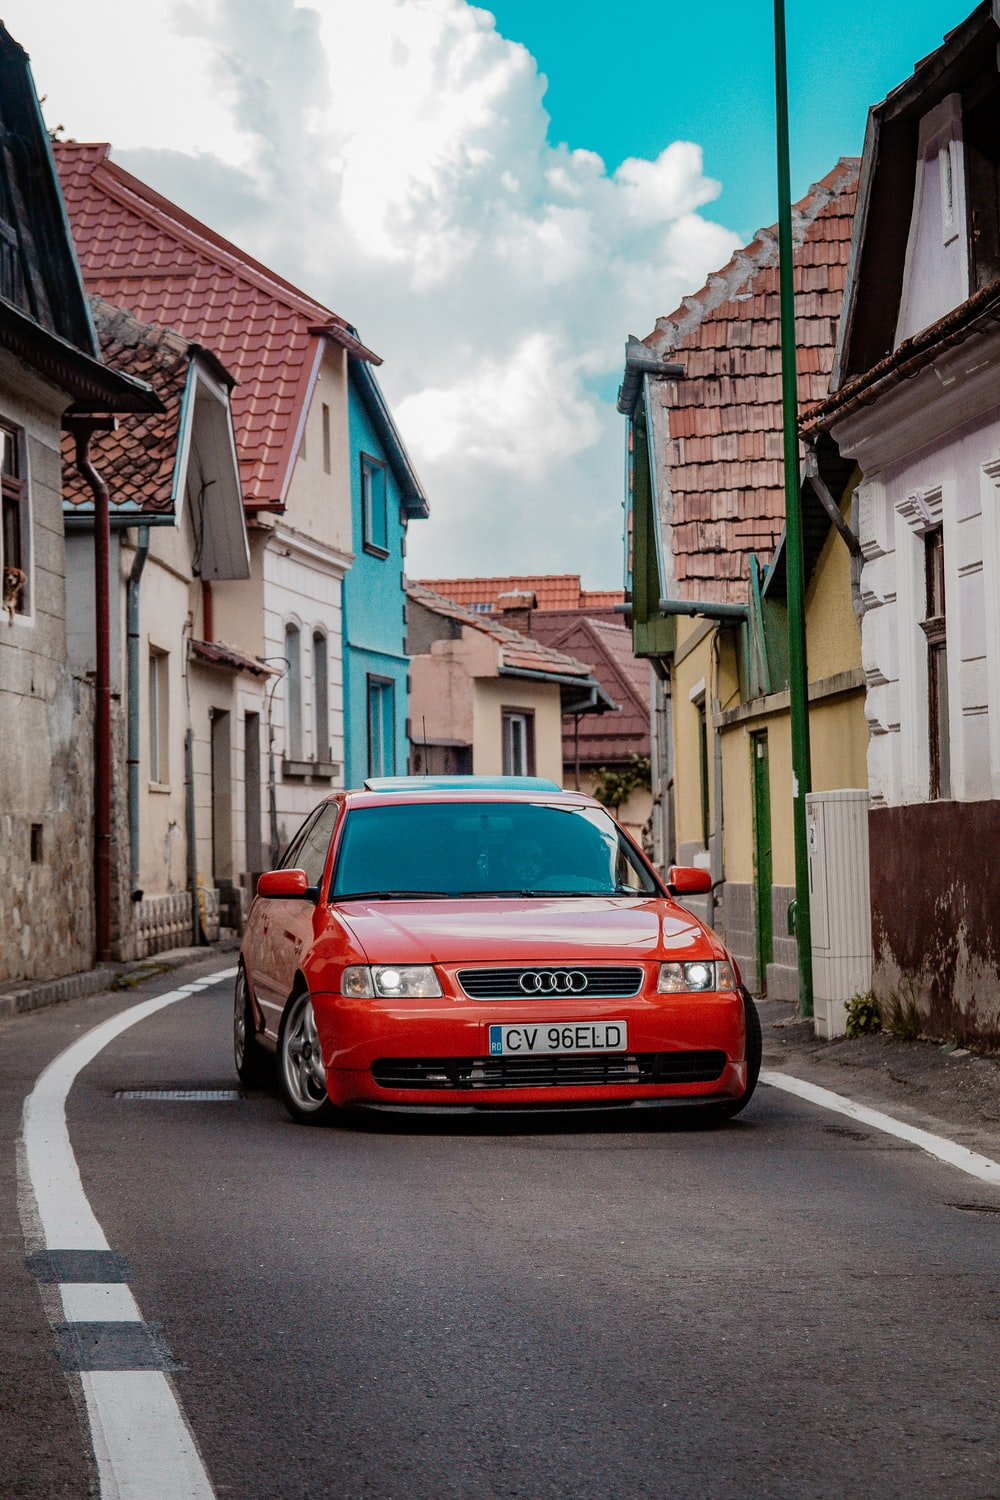 red Audi RS2 on road near houses